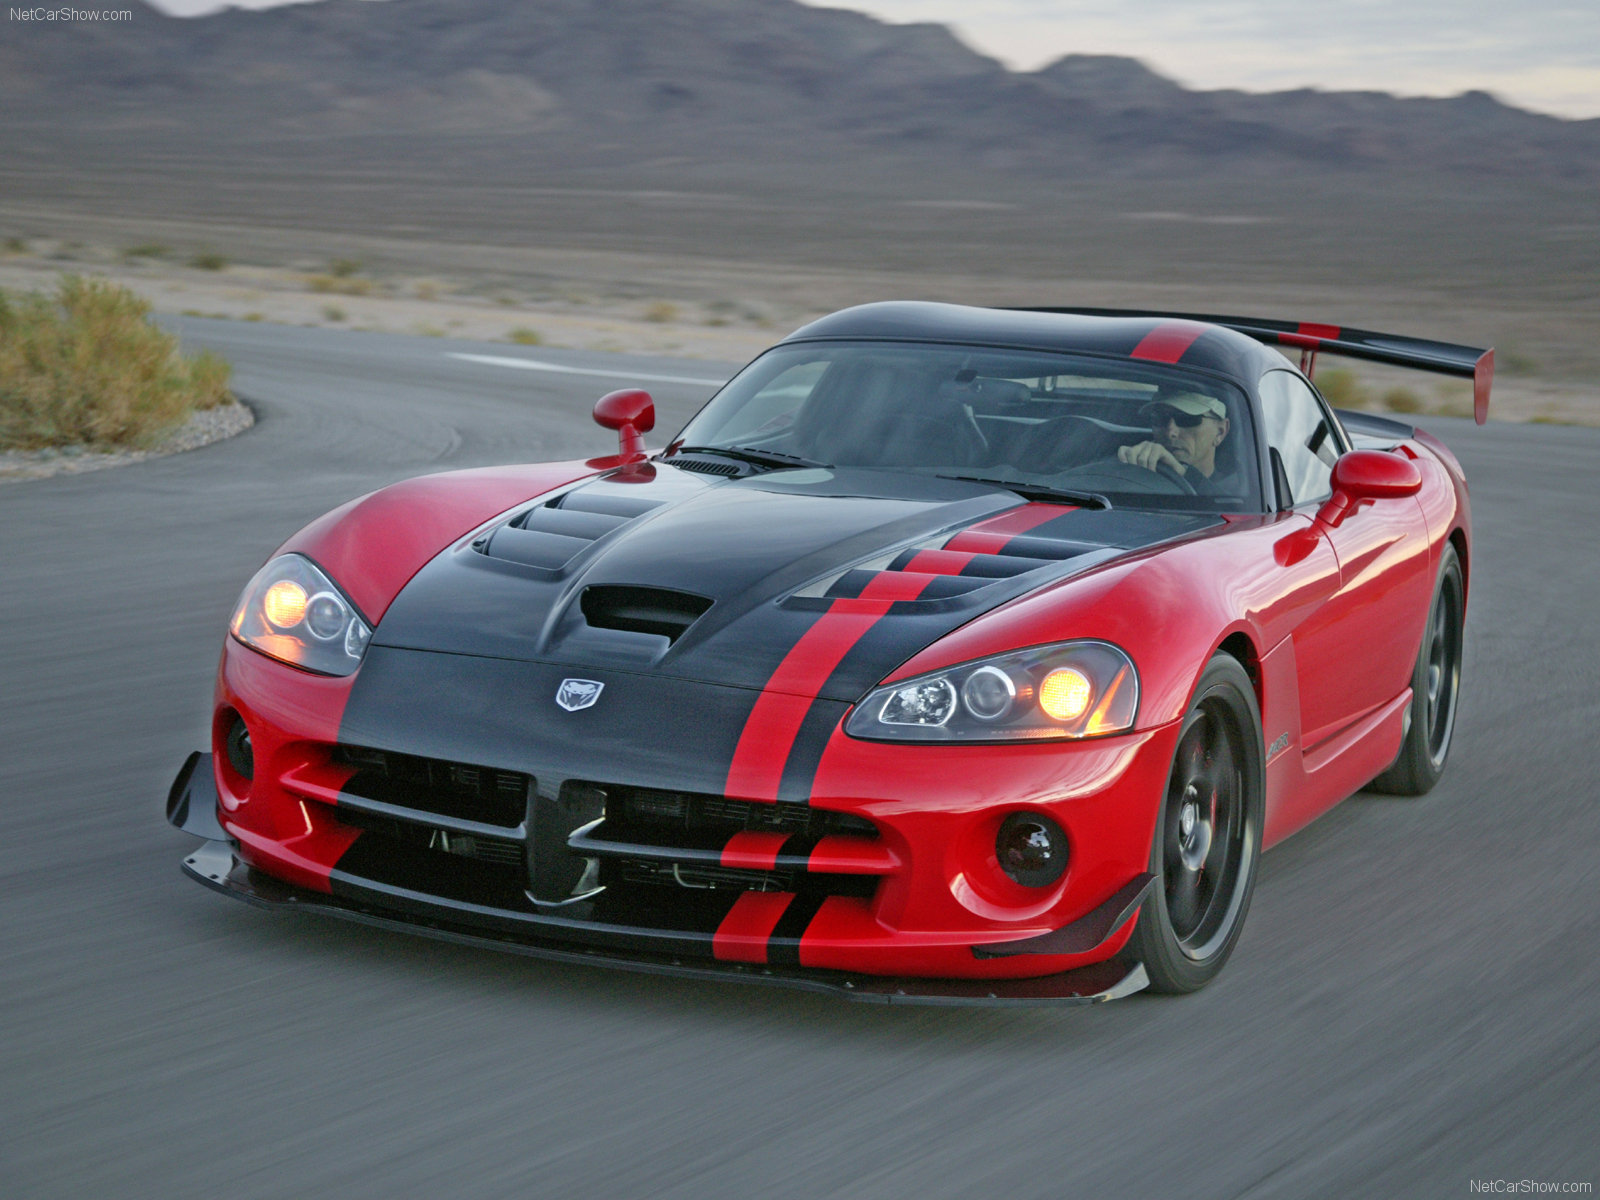 Dodge Viper Srt 10 Acr Photos Photogallery With 11 Pics Carsbase Com